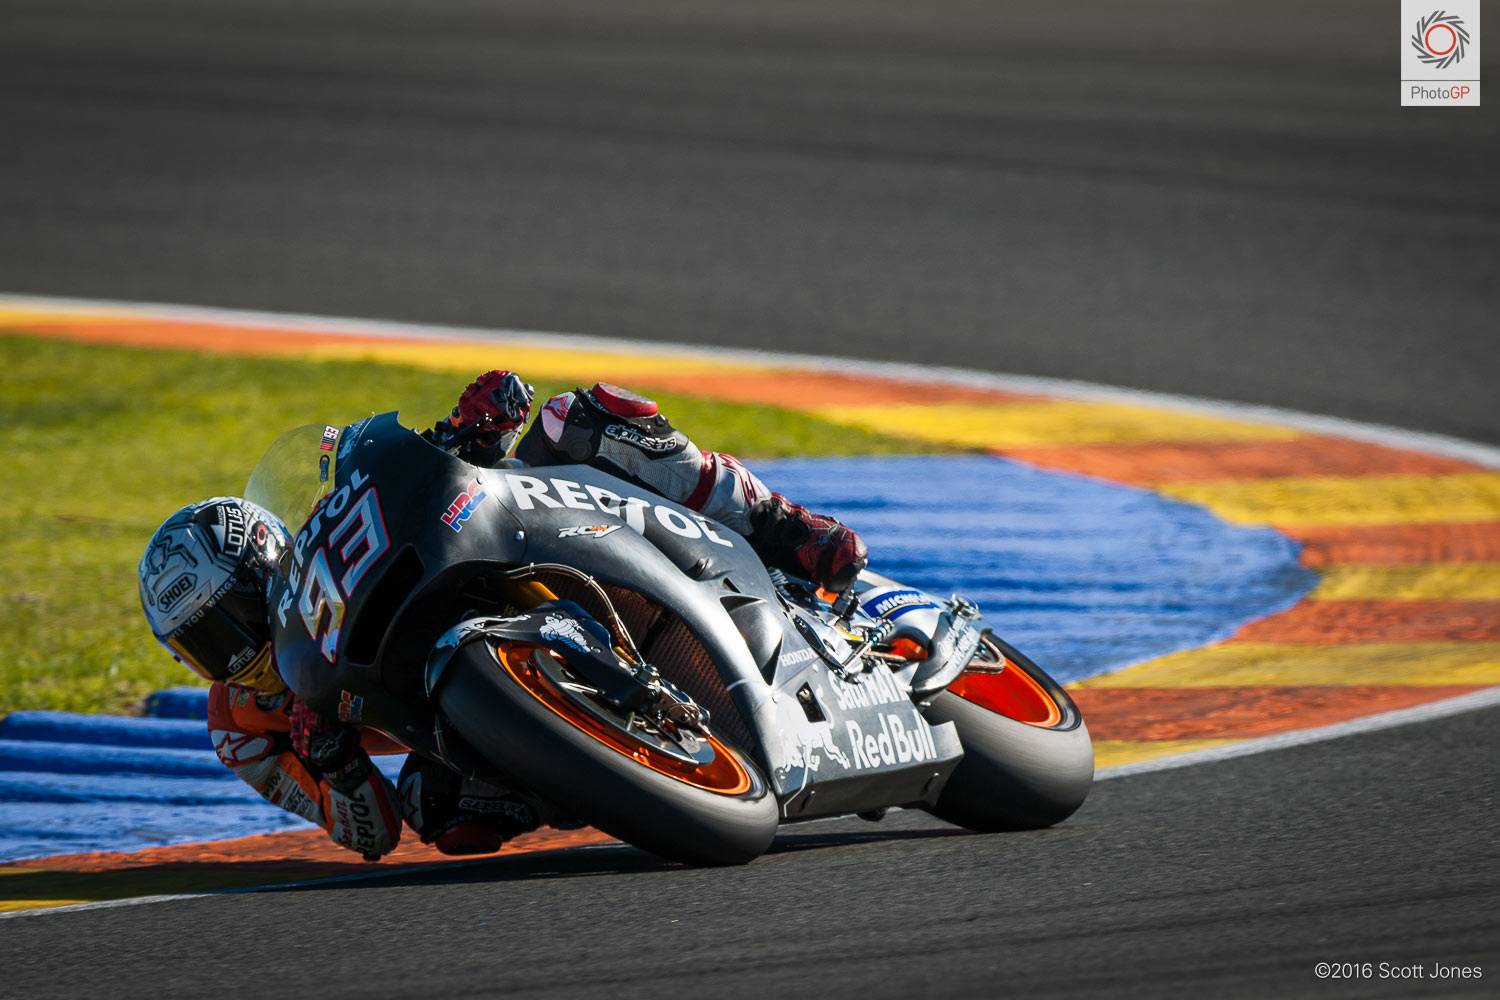 [GP] Tests Valence 2016-Valencia-Test-Marc-Marquez-track